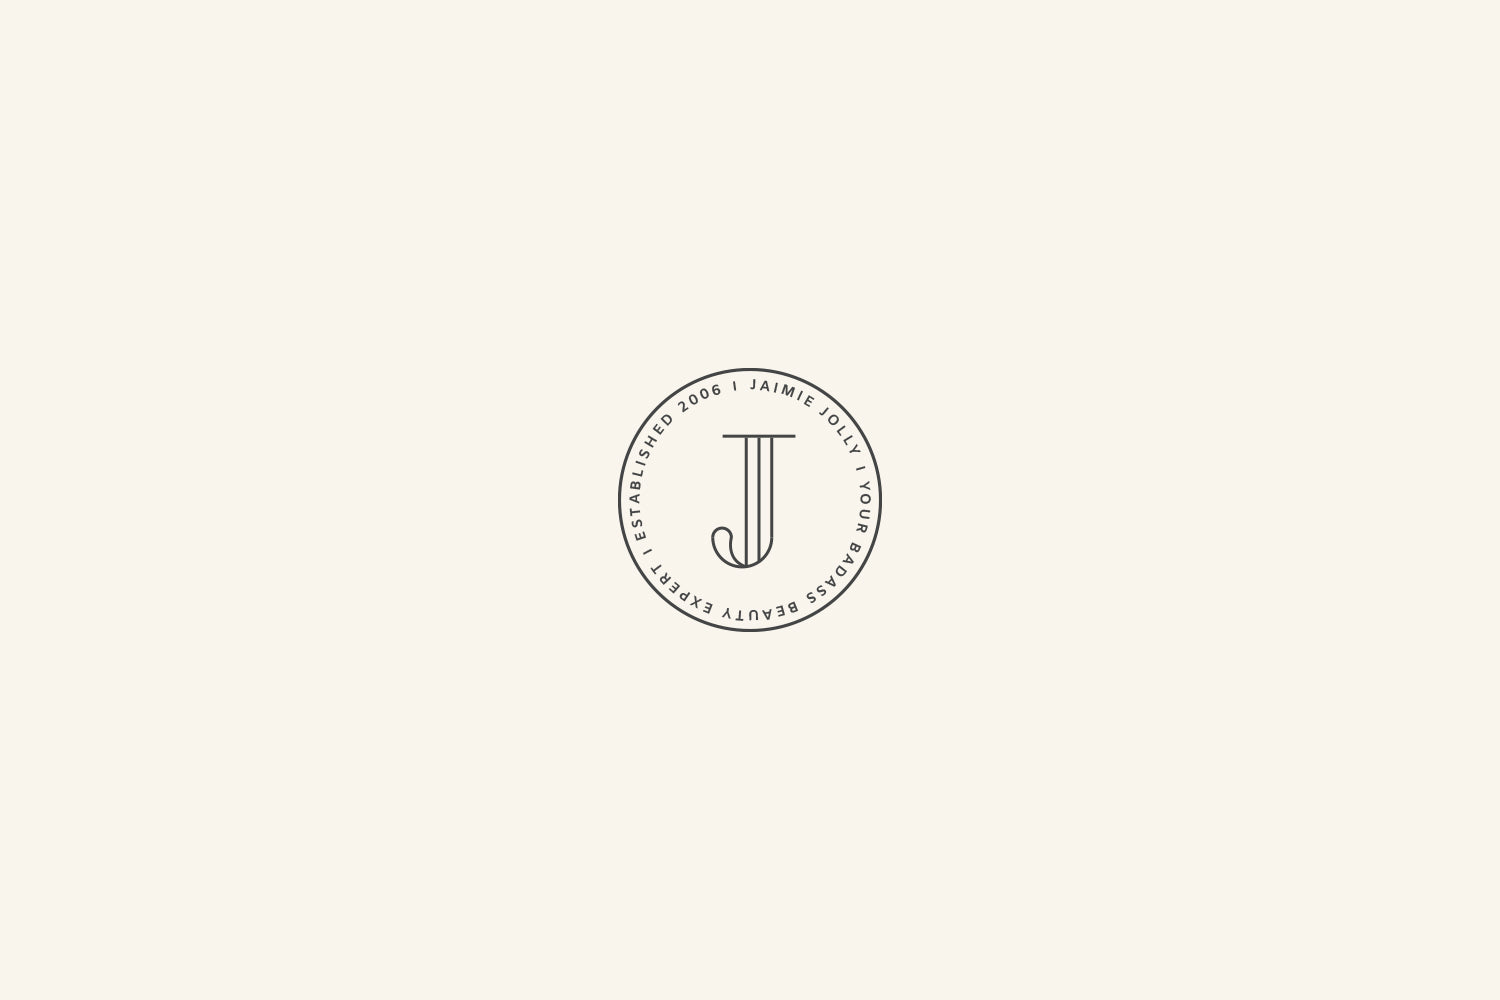 julabrand-jaimie-jolly-branding-web-design-print-collateral